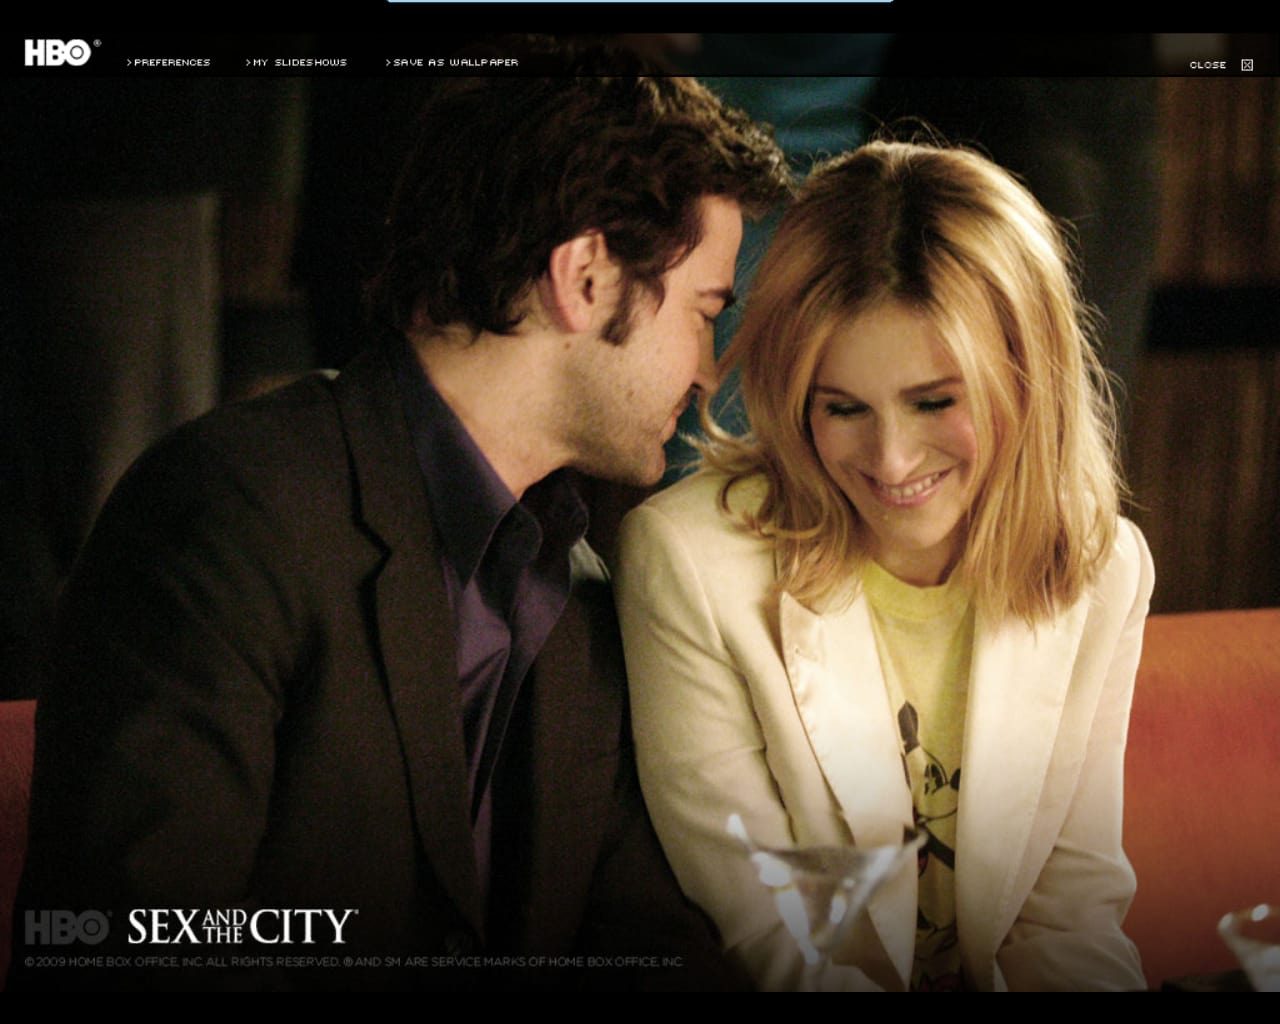 Sex and the city bootlegged